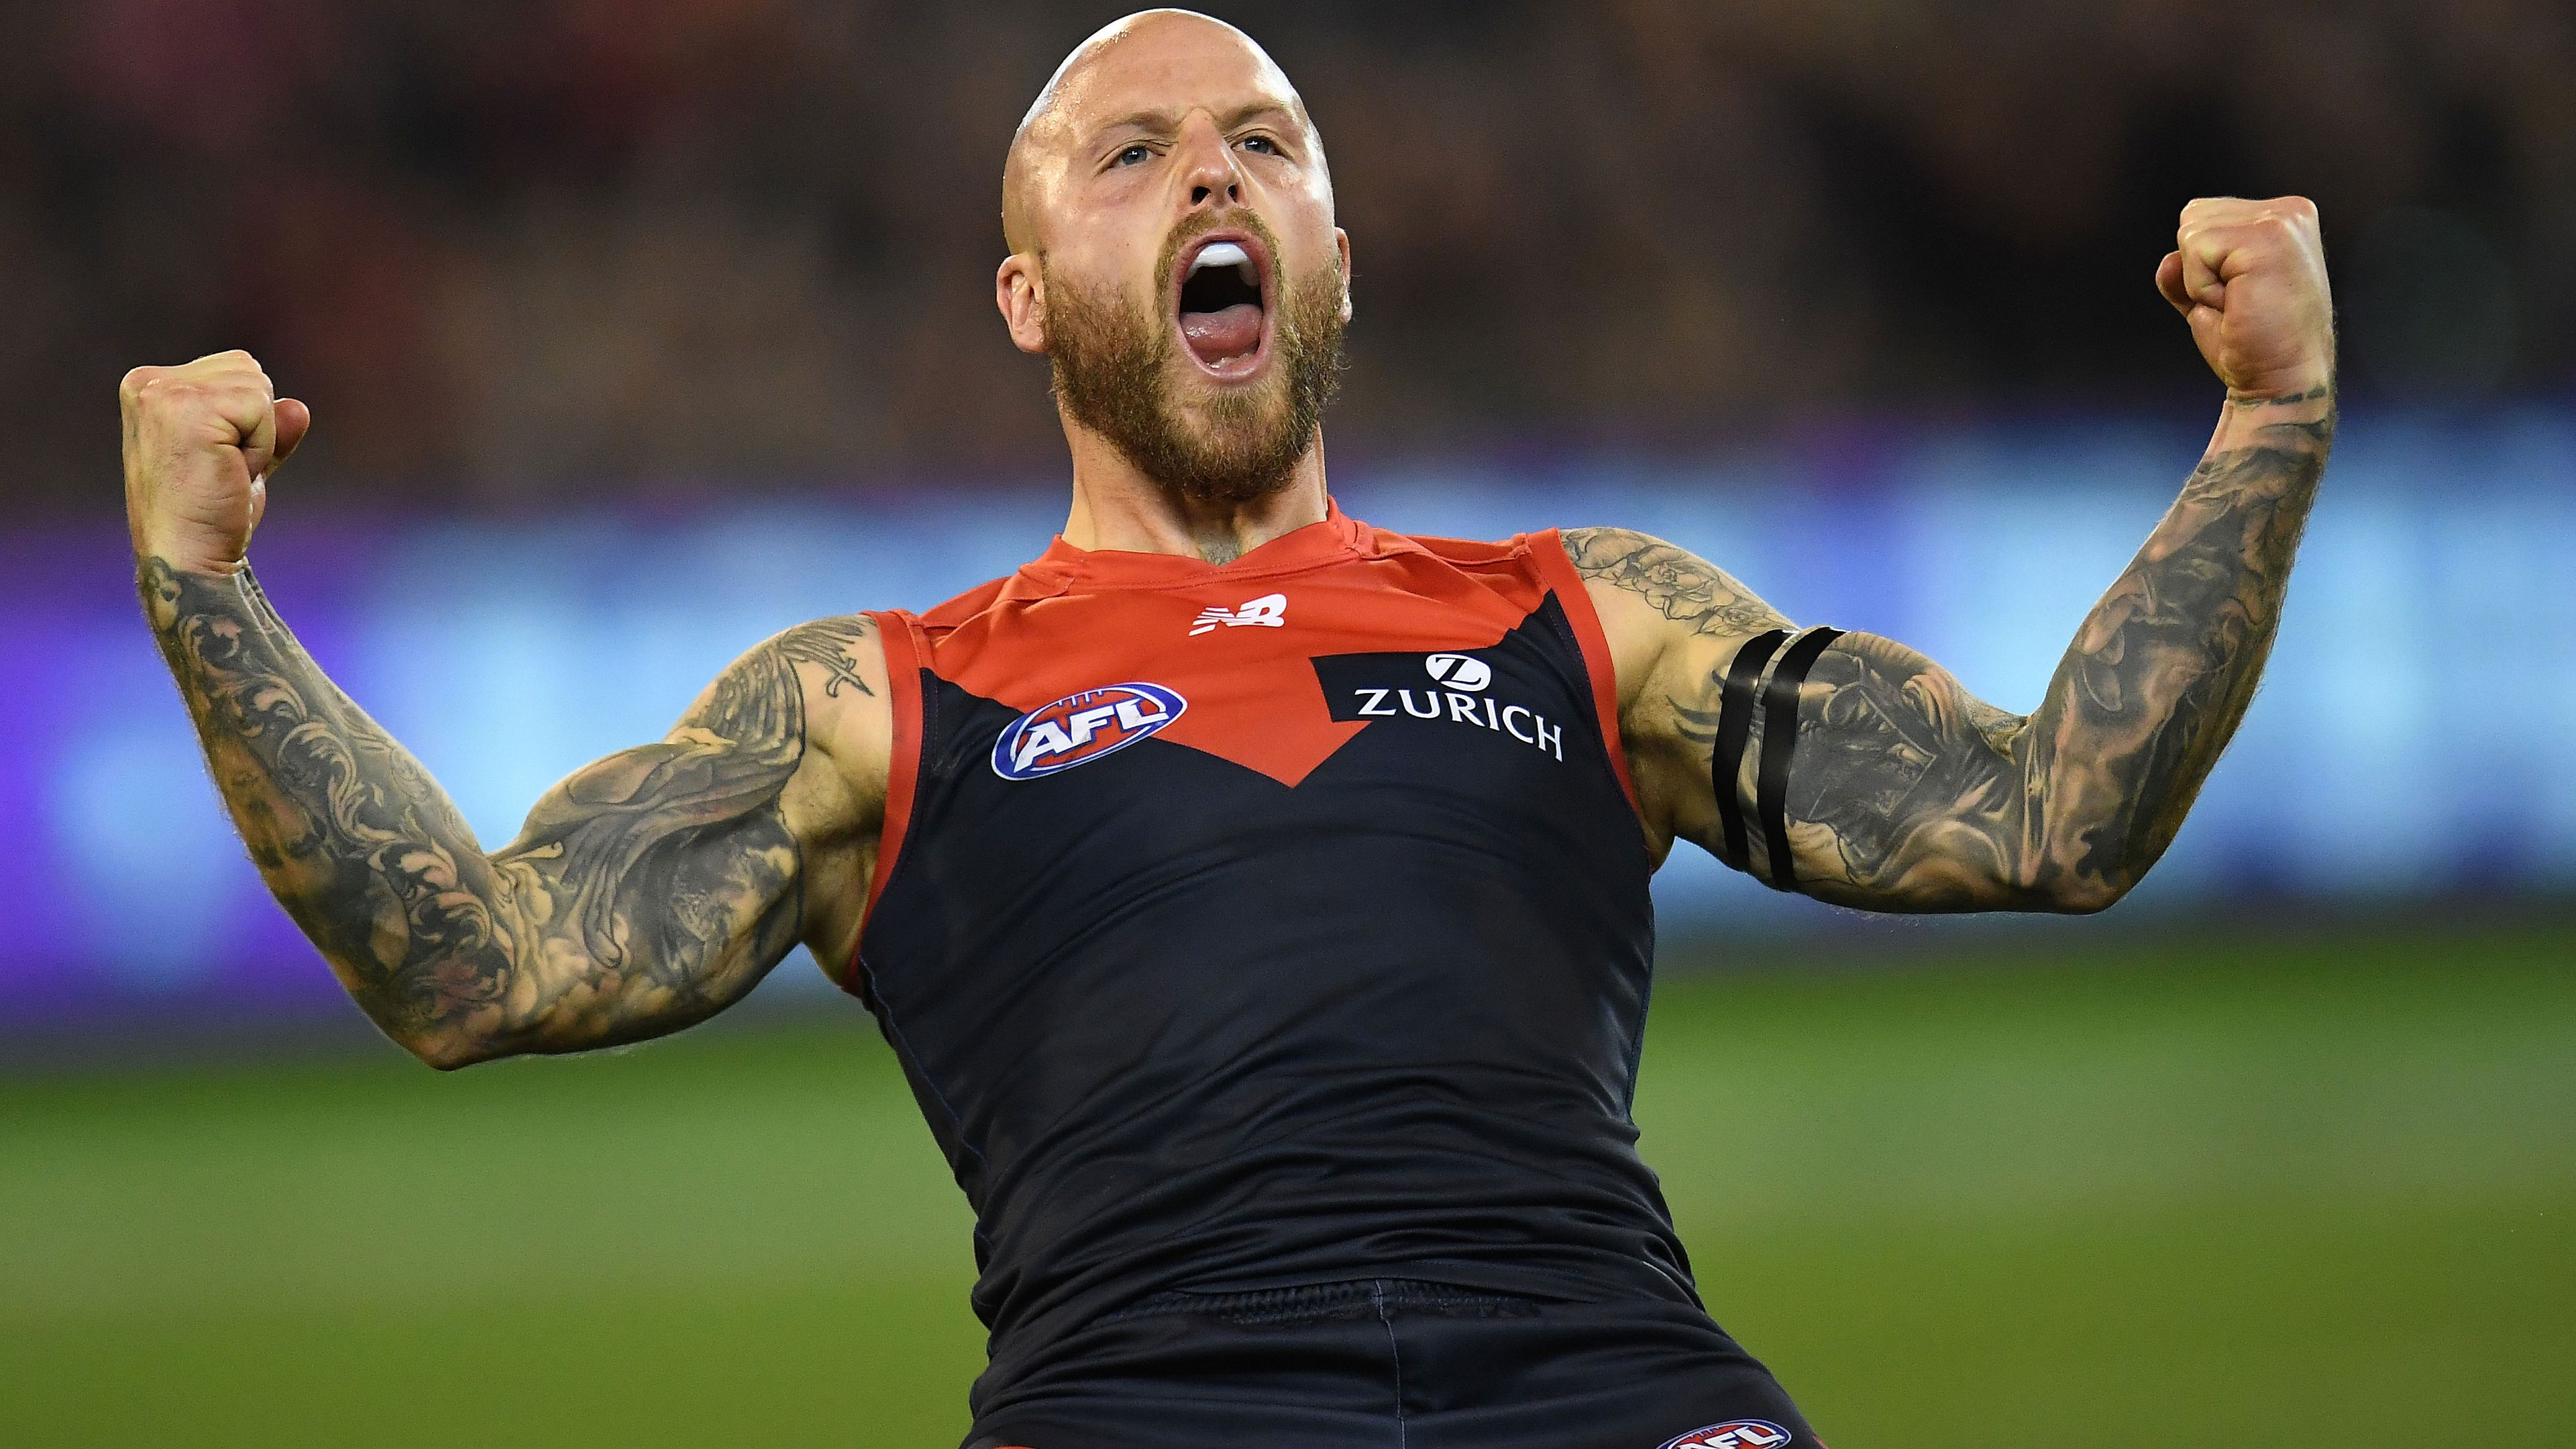 Melbourne Demons run away with it to eliminate Geelong Cats in final